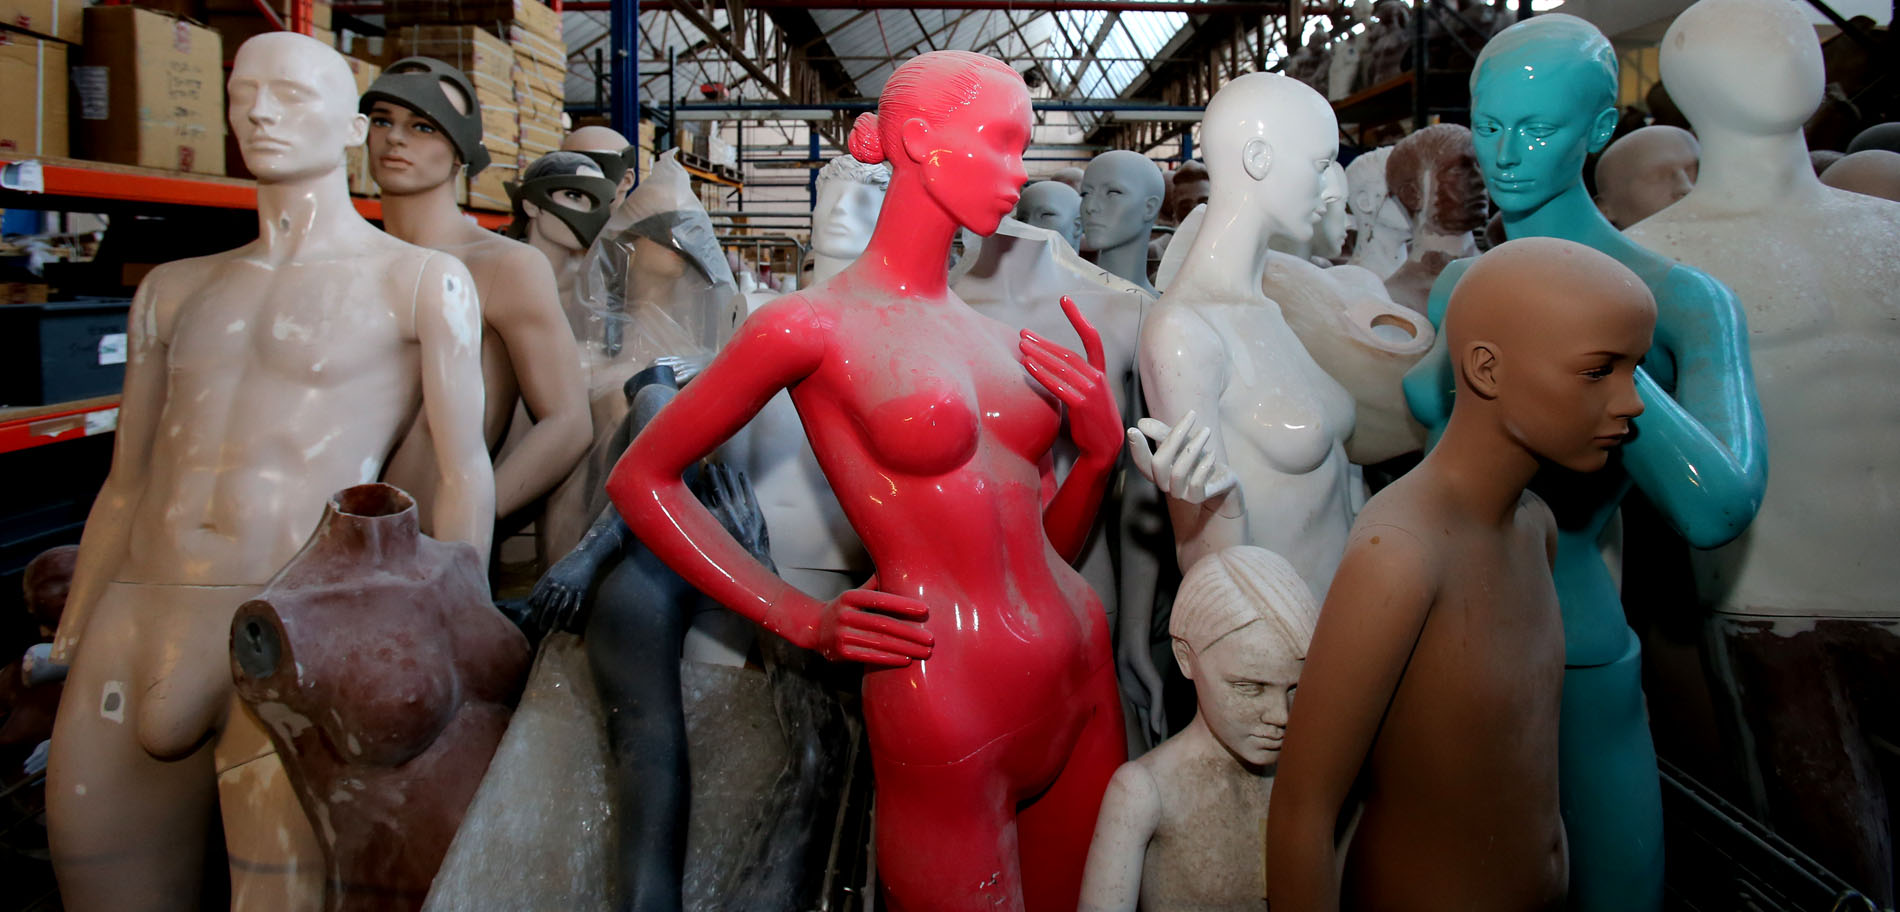 150-year-old mannequin firm could be forced out of area